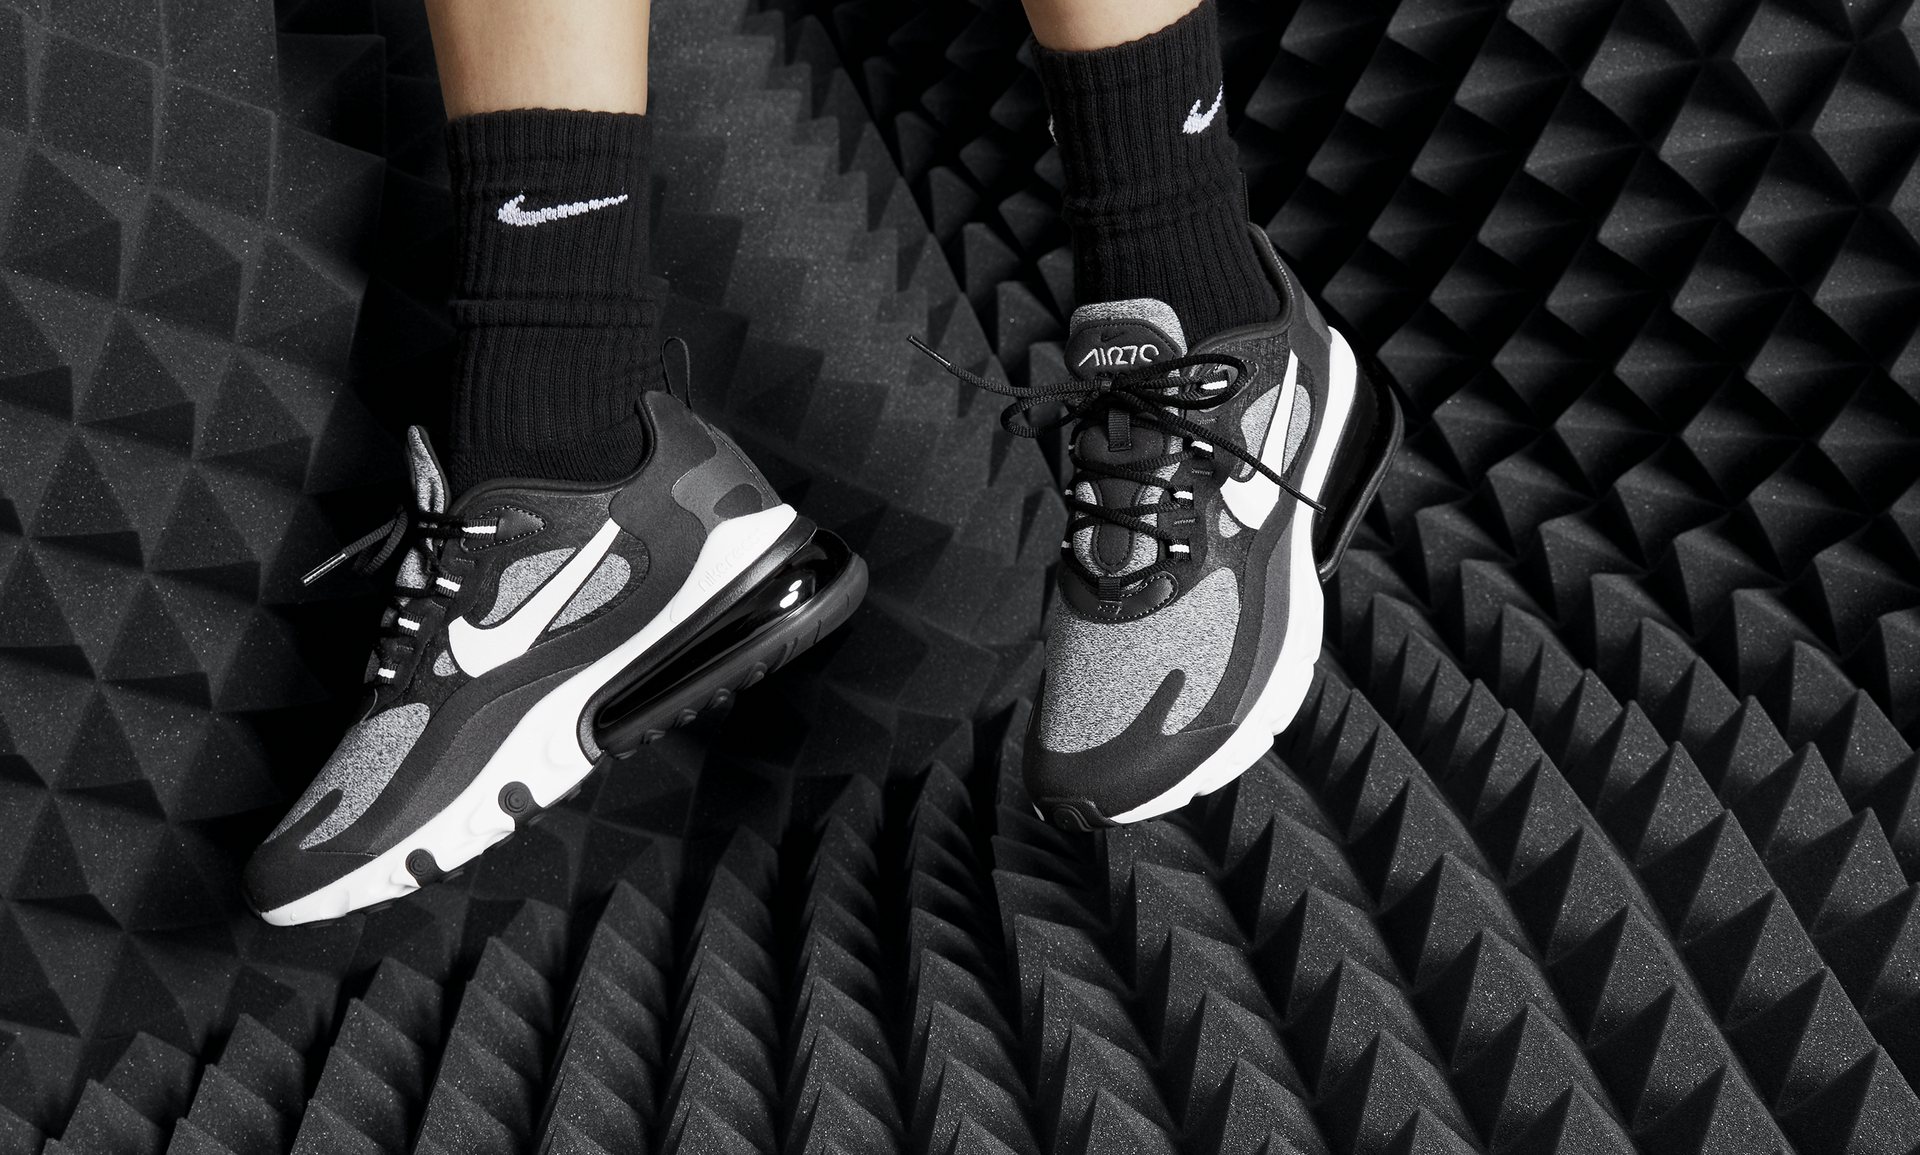 Find The Nike Air Max 270 React Optical Women 39 S Shoe At Nike Com Enjoy Free Shipping And Returns With Nikeplus Nike Tenis